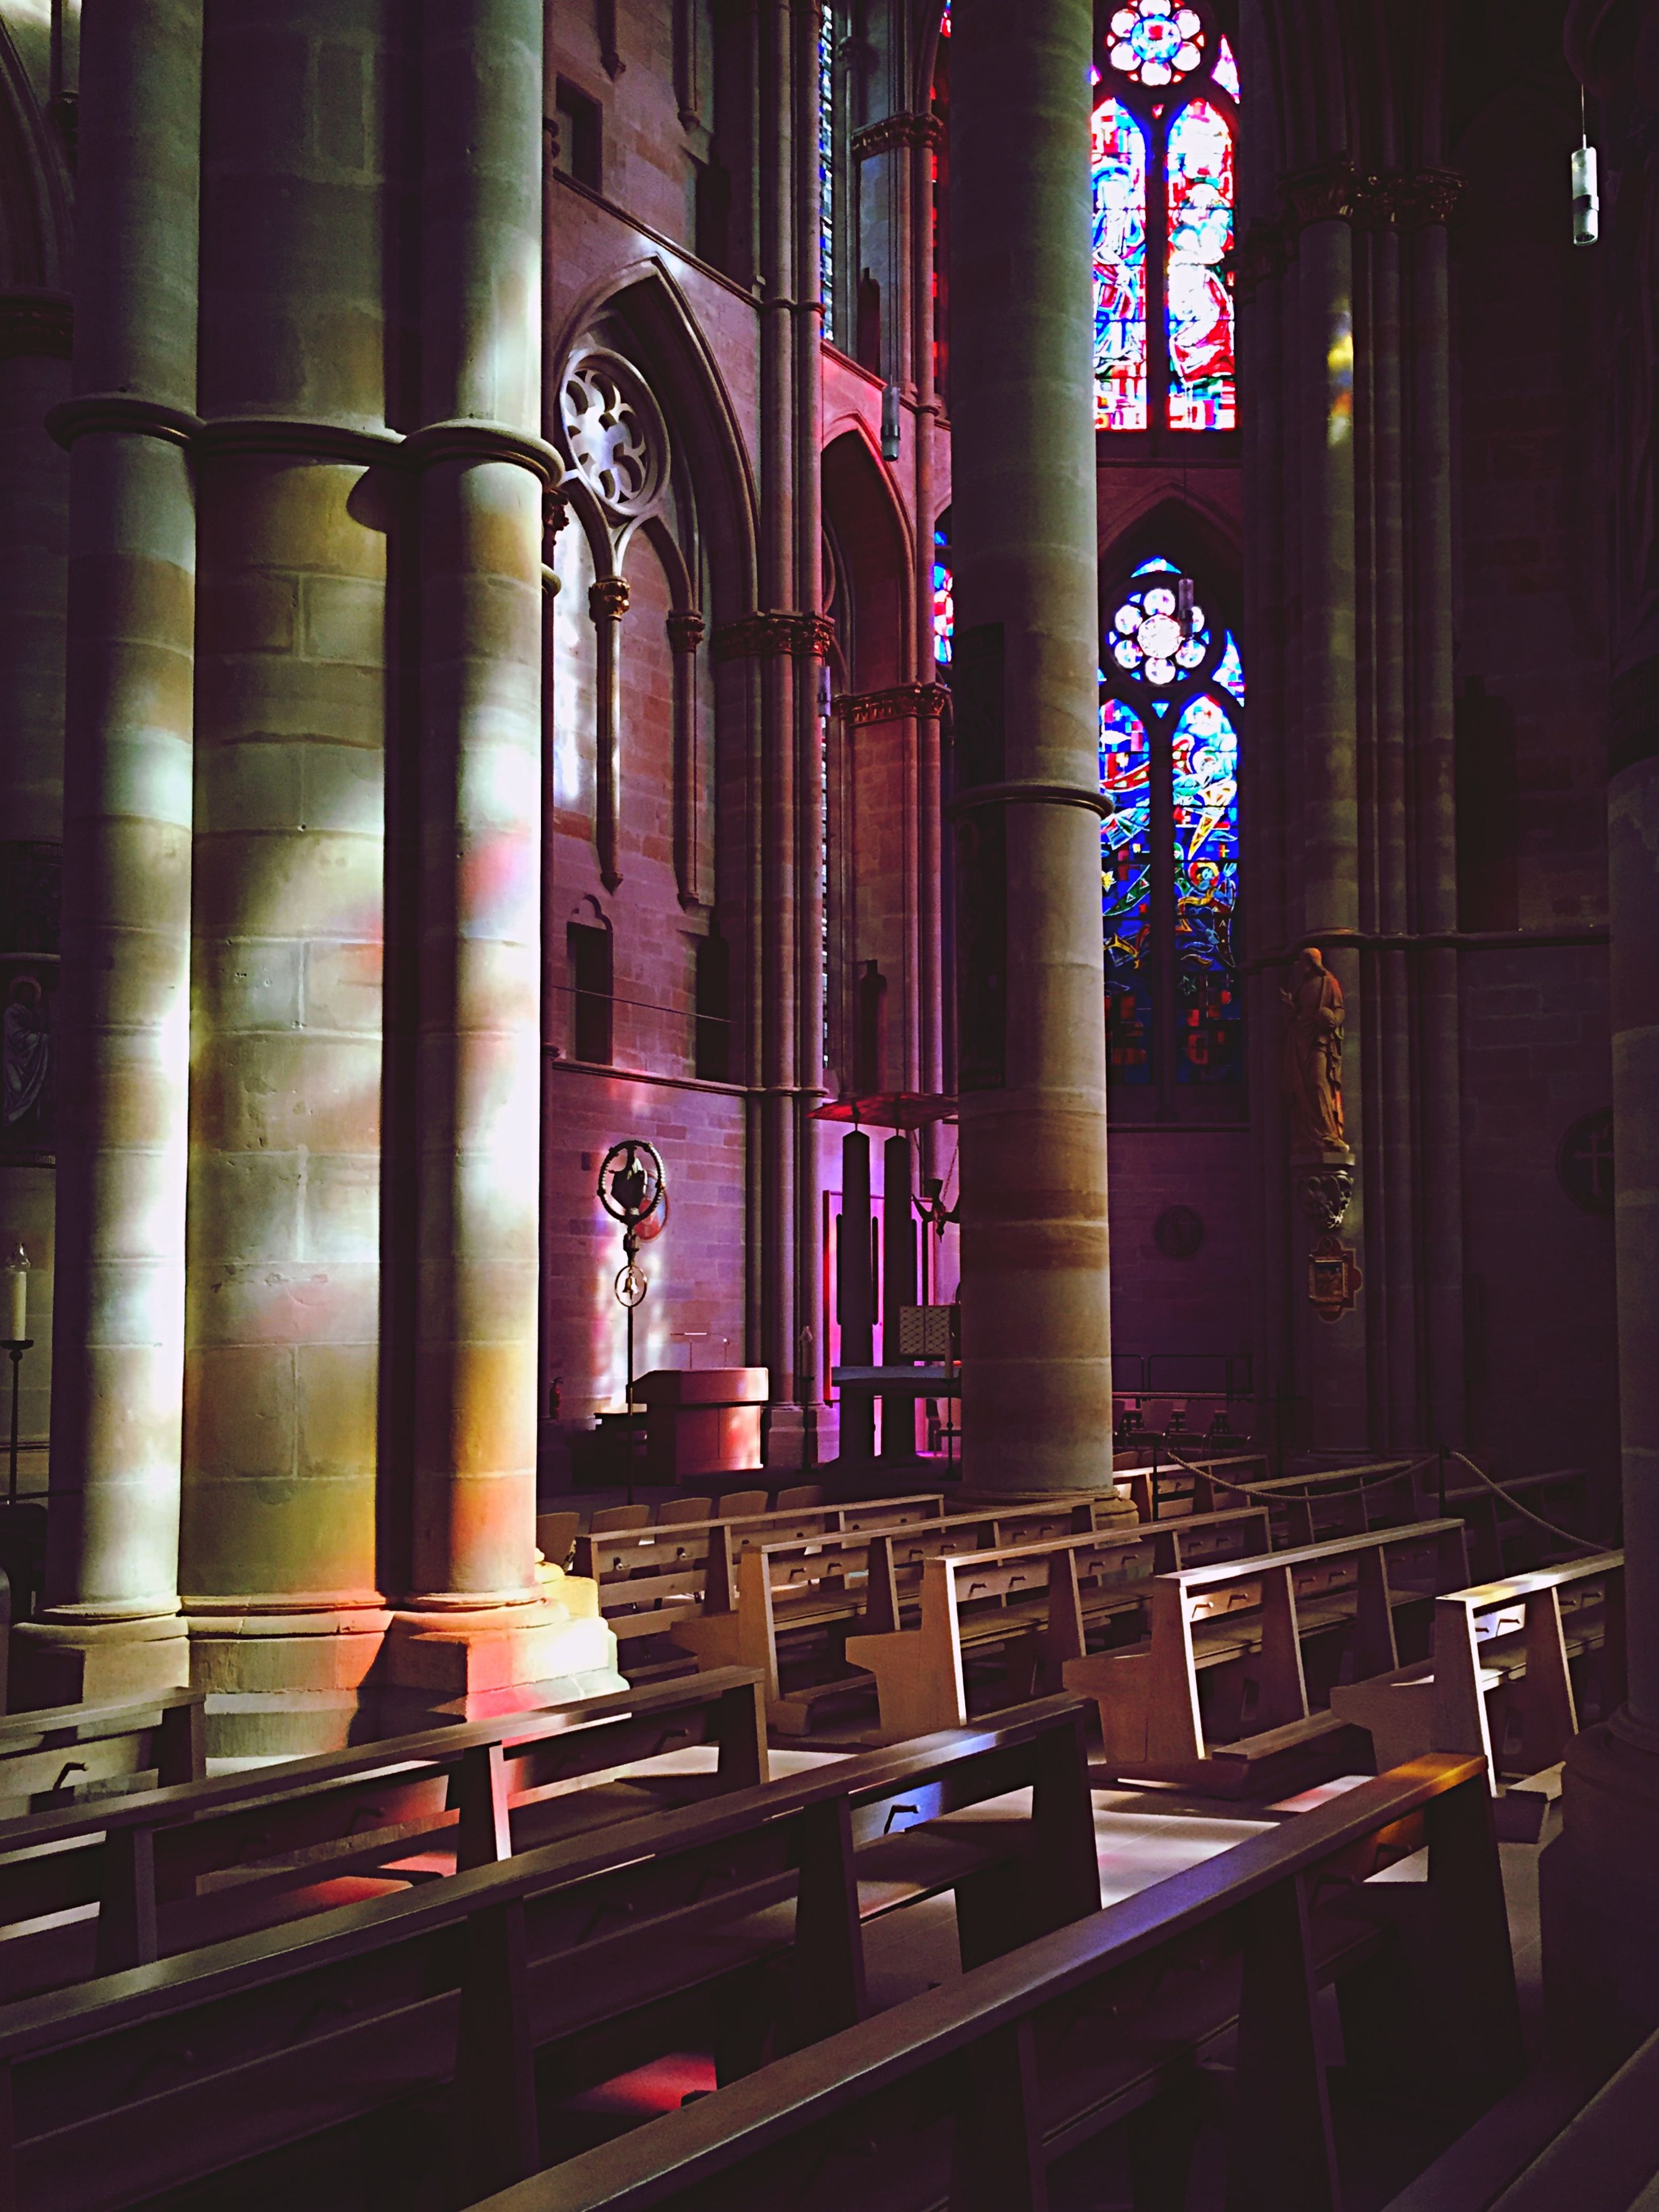 architecture, built structure, illuminated, indoors, night, building exterior, window, place of worship, religion, church, lighting equipment, no people, architectural column, city, building, spirituality, absence, interior